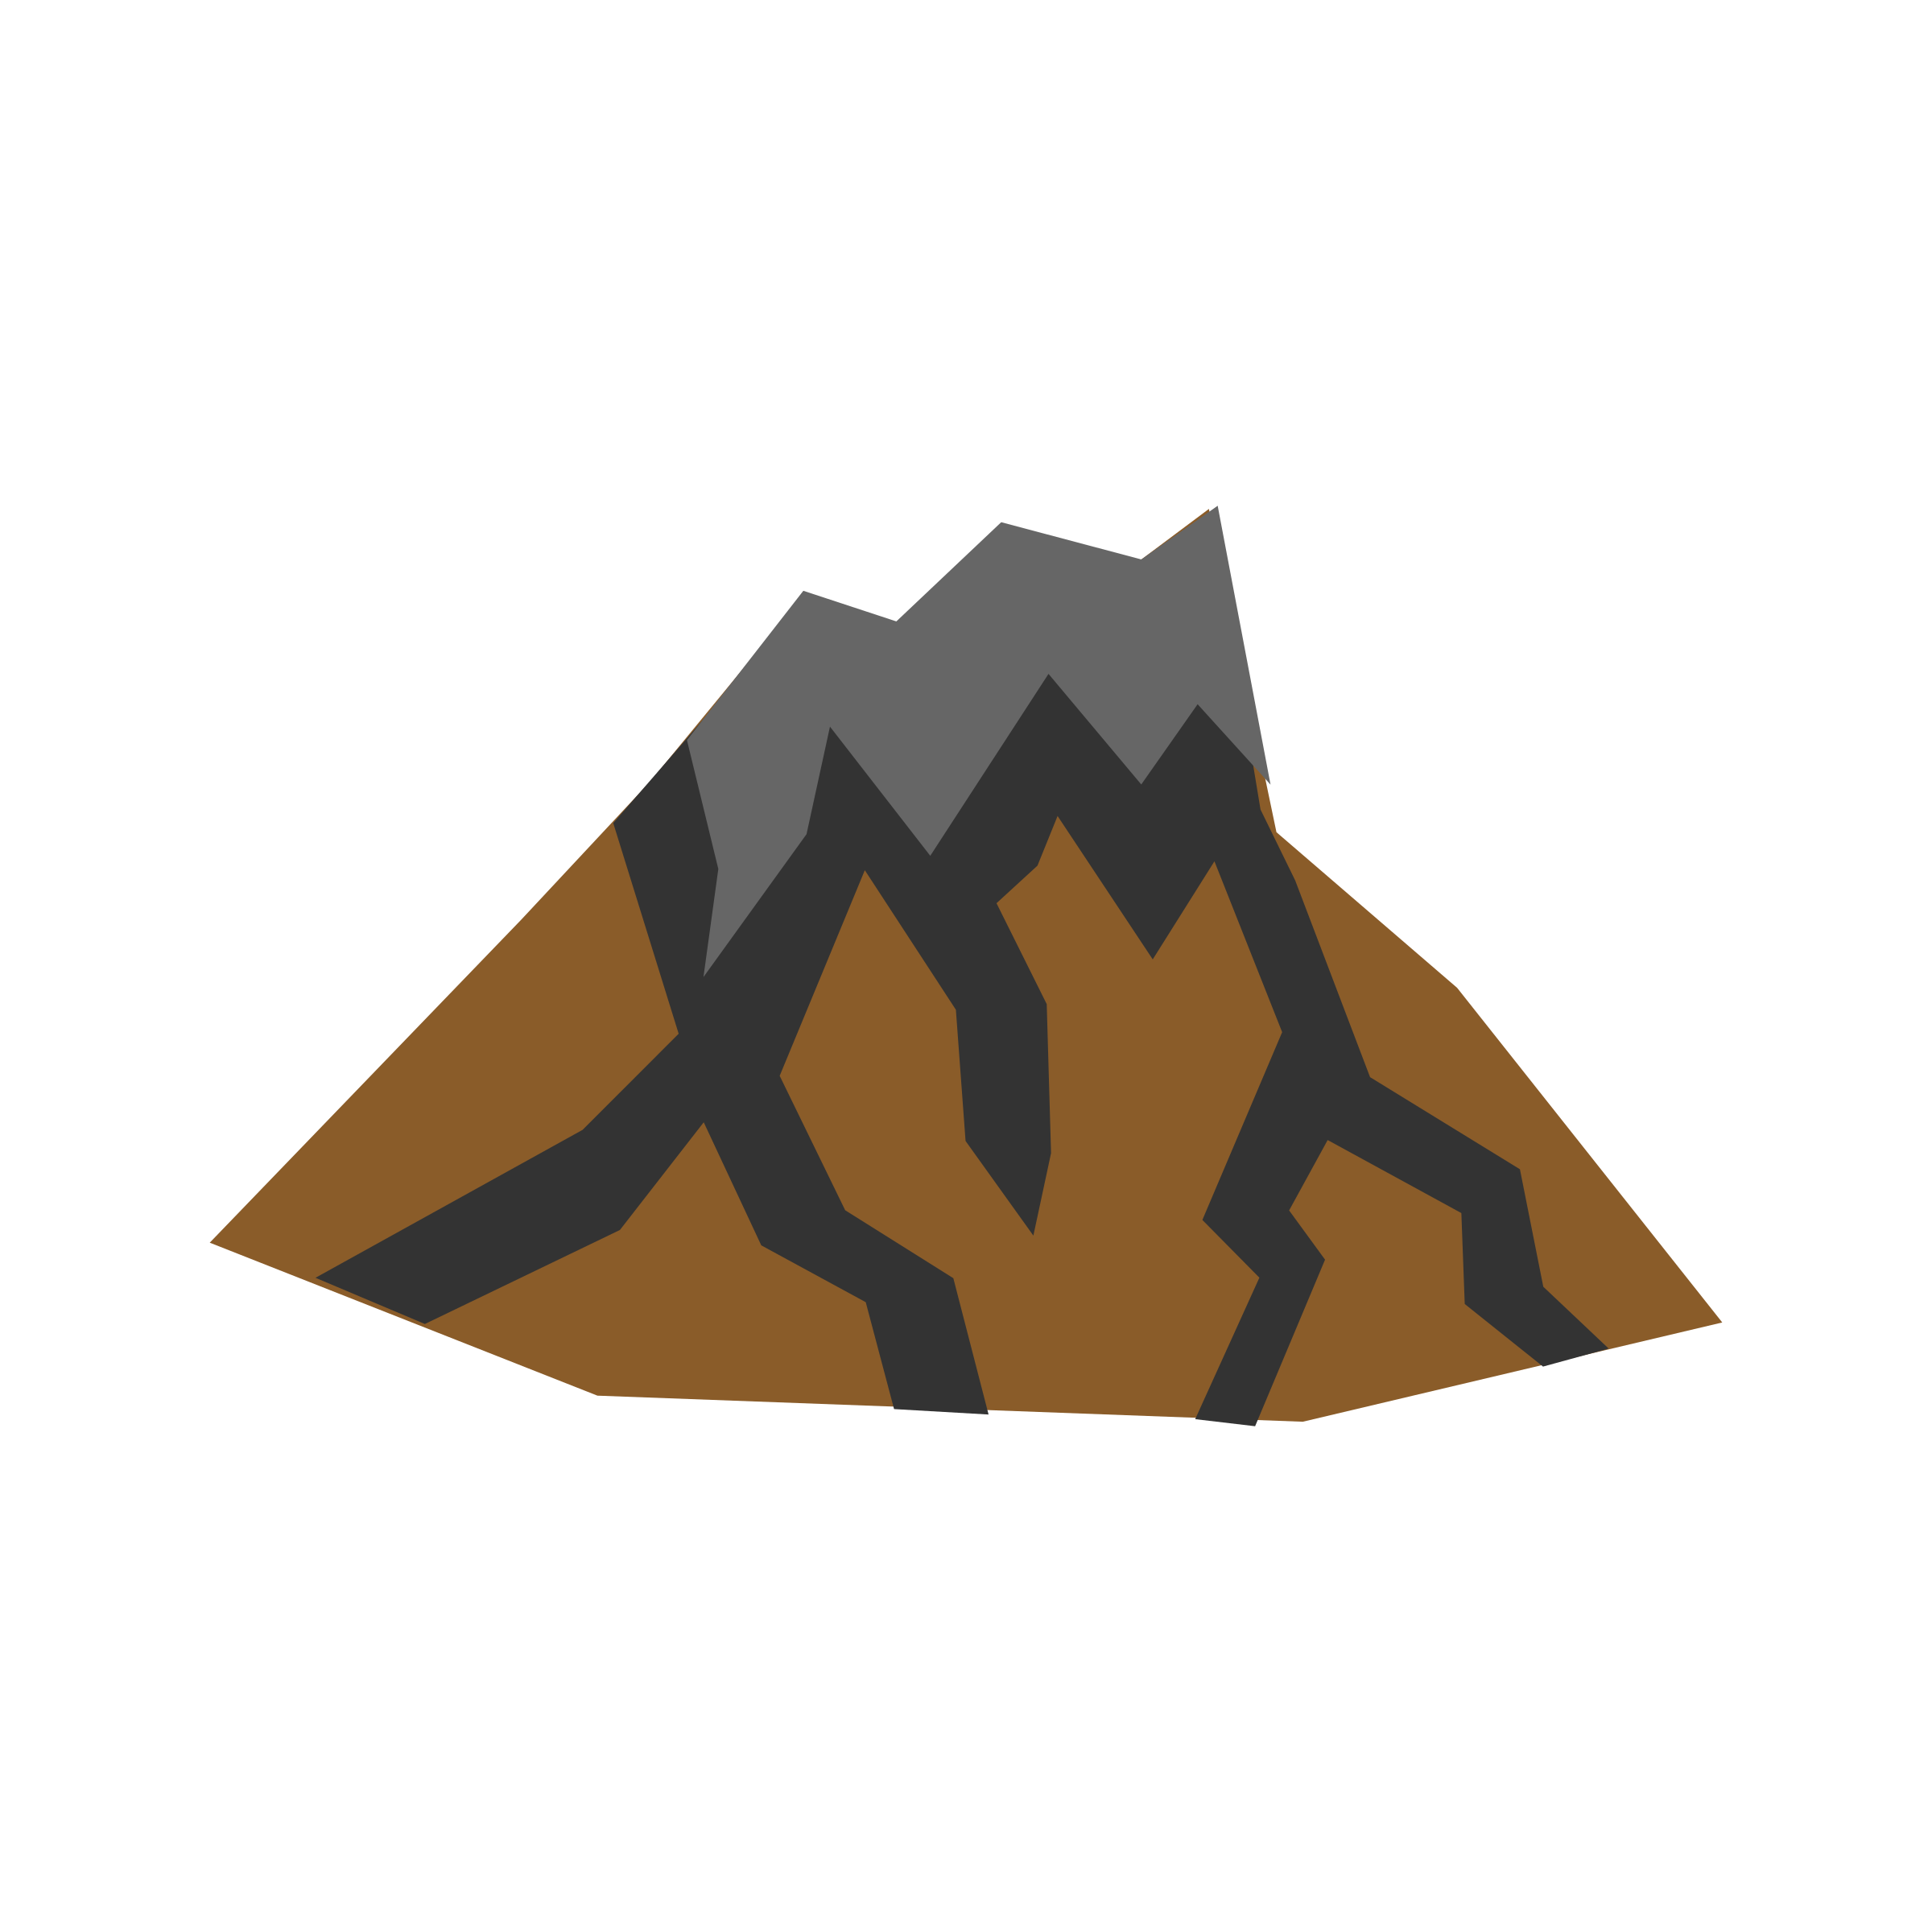 collection of png. Clipart mountain volcano